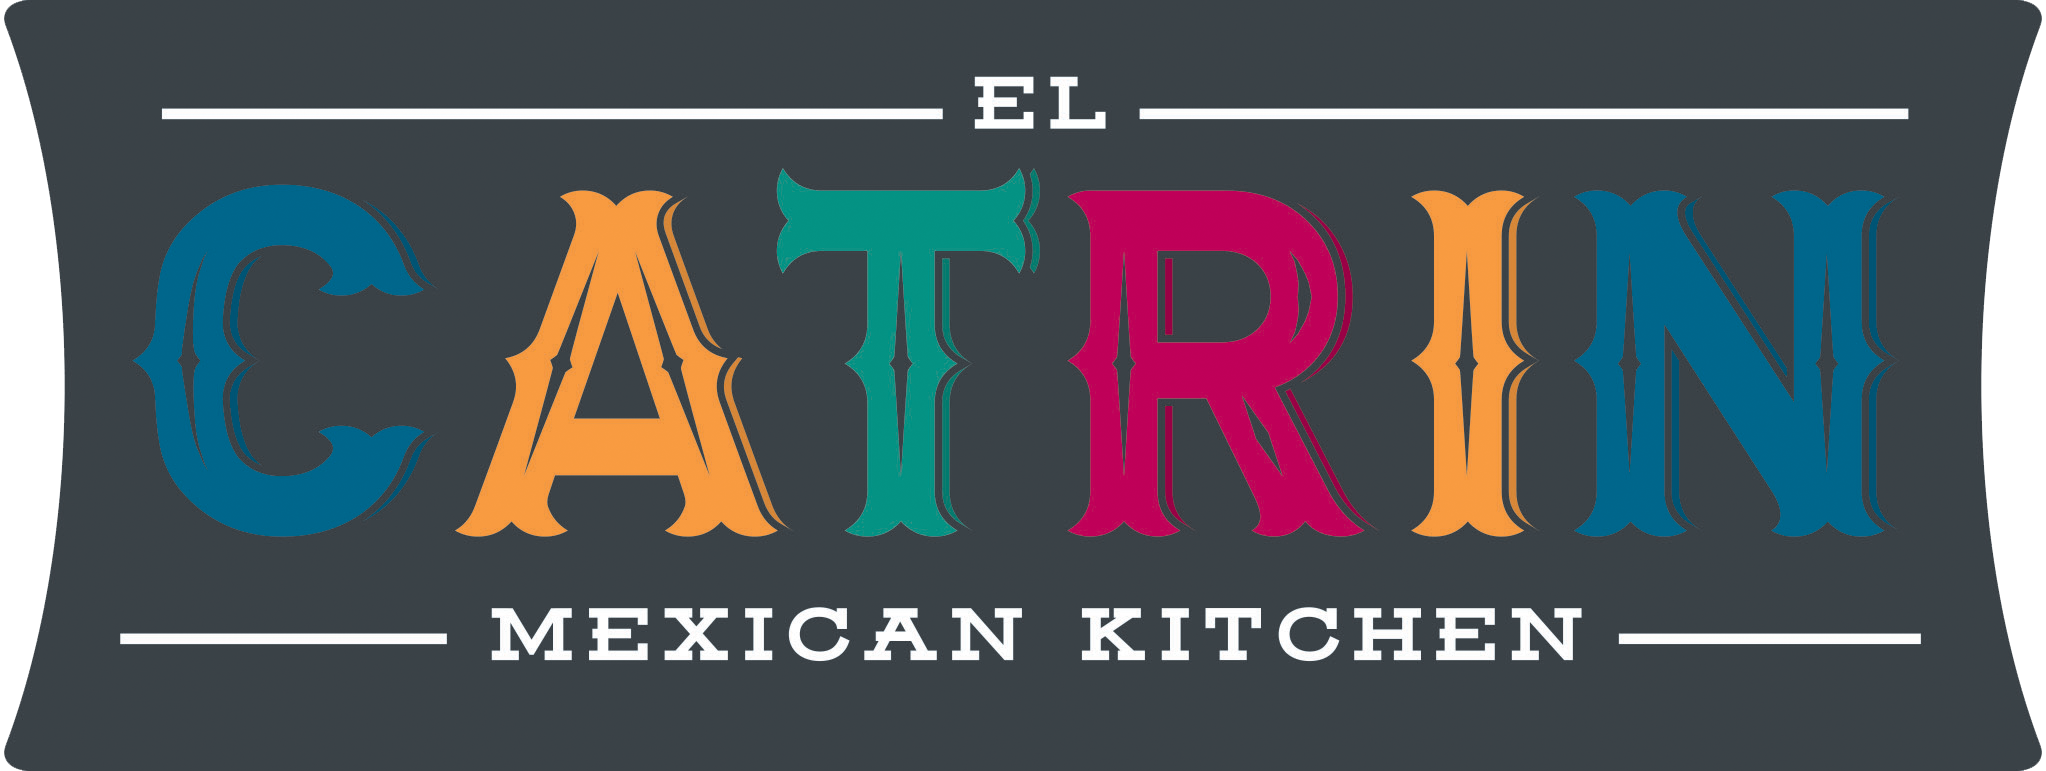 El Catrin Mexican Kitchen Delicious Mexican Food in Sellersburg, IN